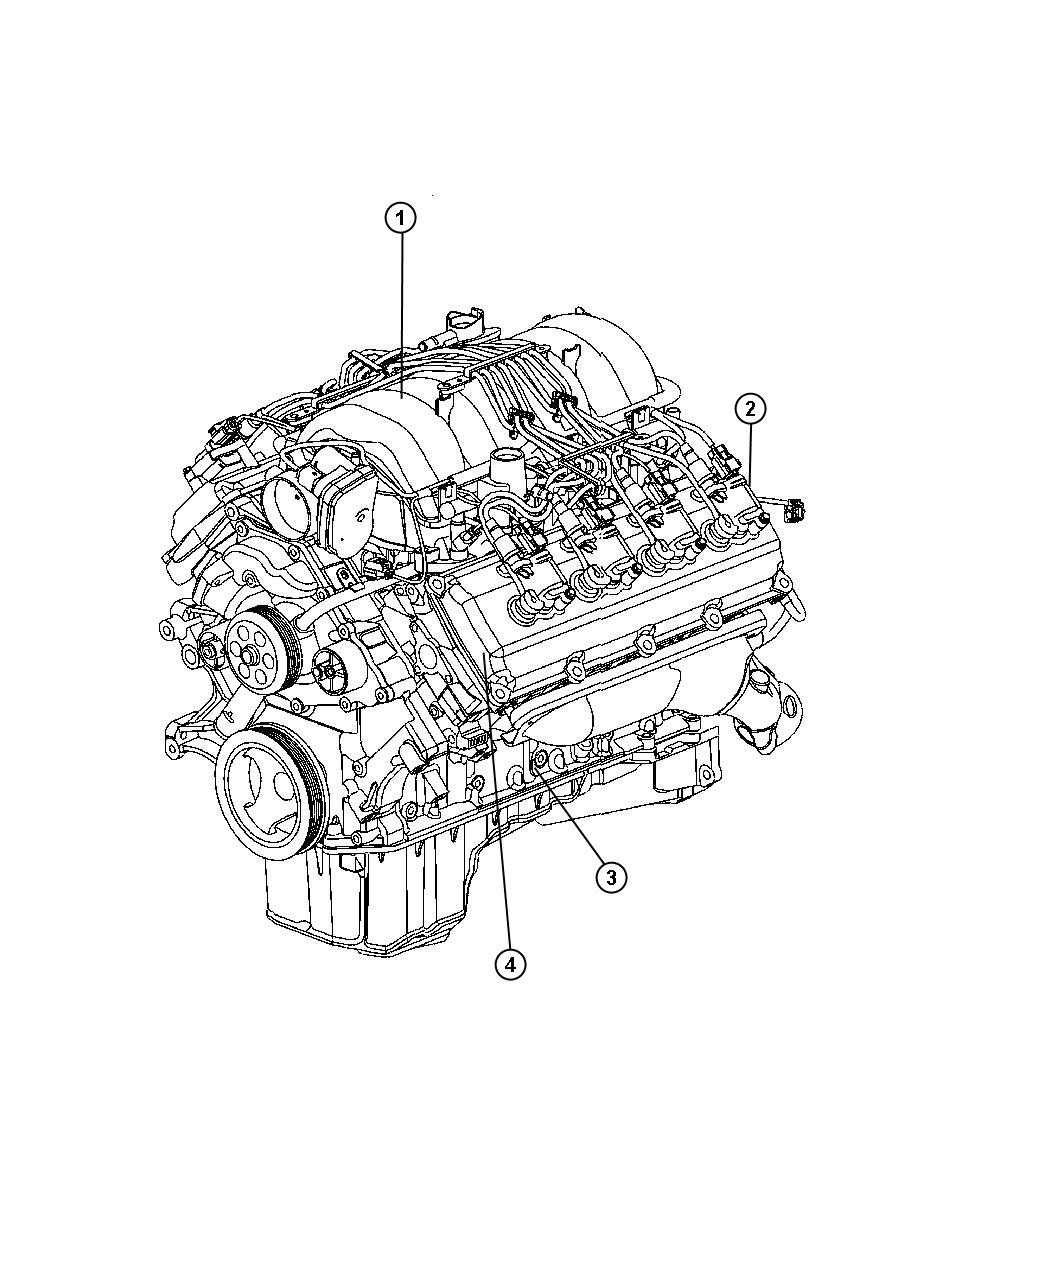 Dodge Charger Engine Assembly And Identification 5 7l Ezb